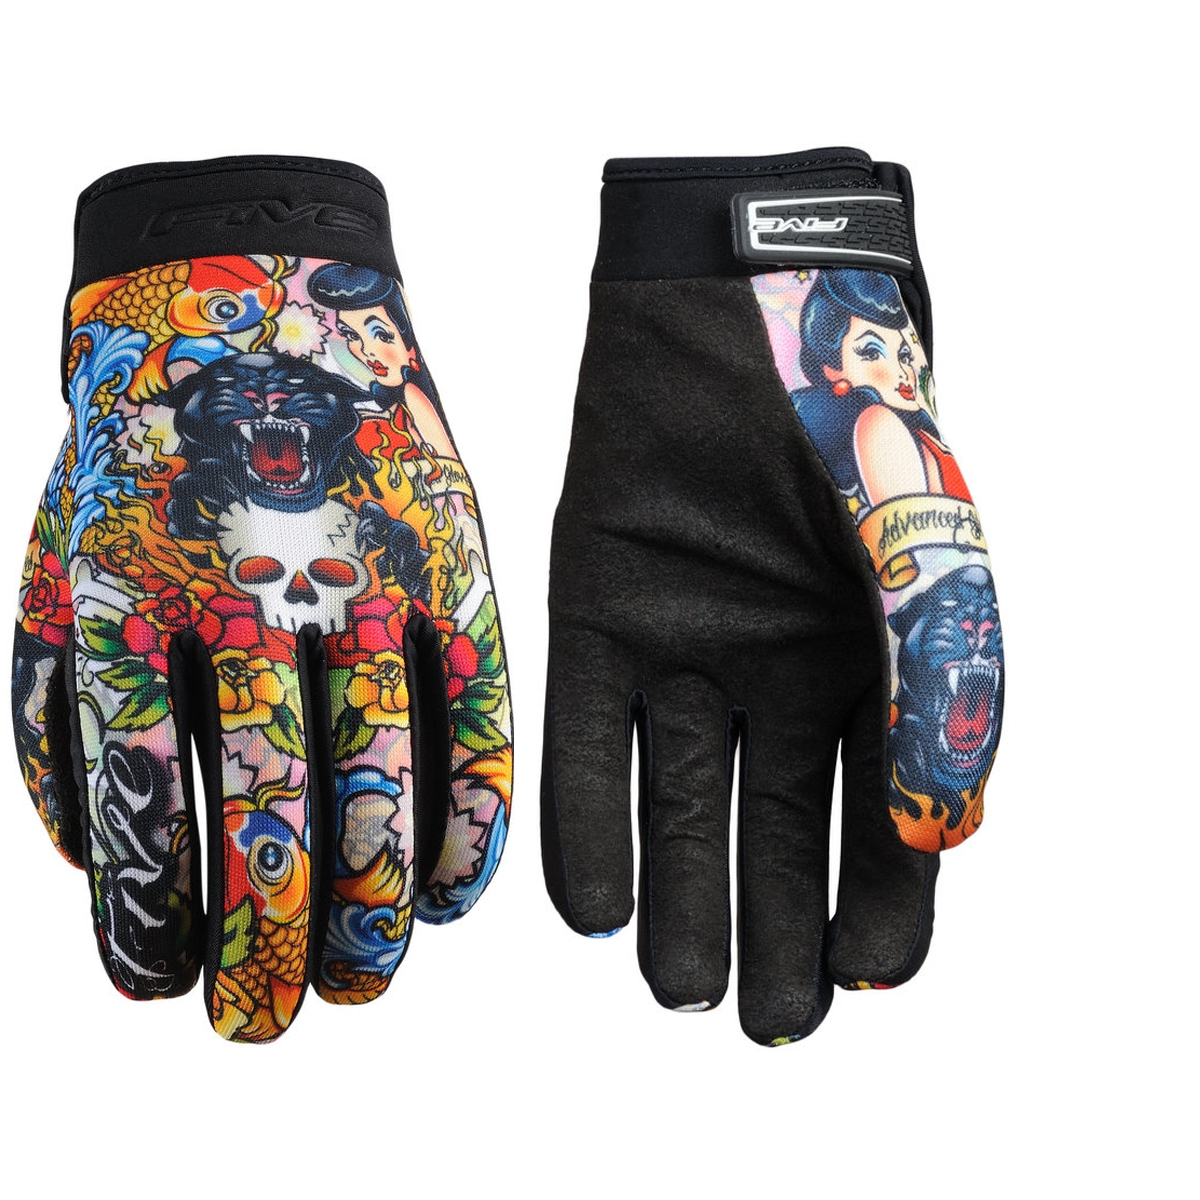 Gants Five Planet Fashion Tattoo Cougar - XXL